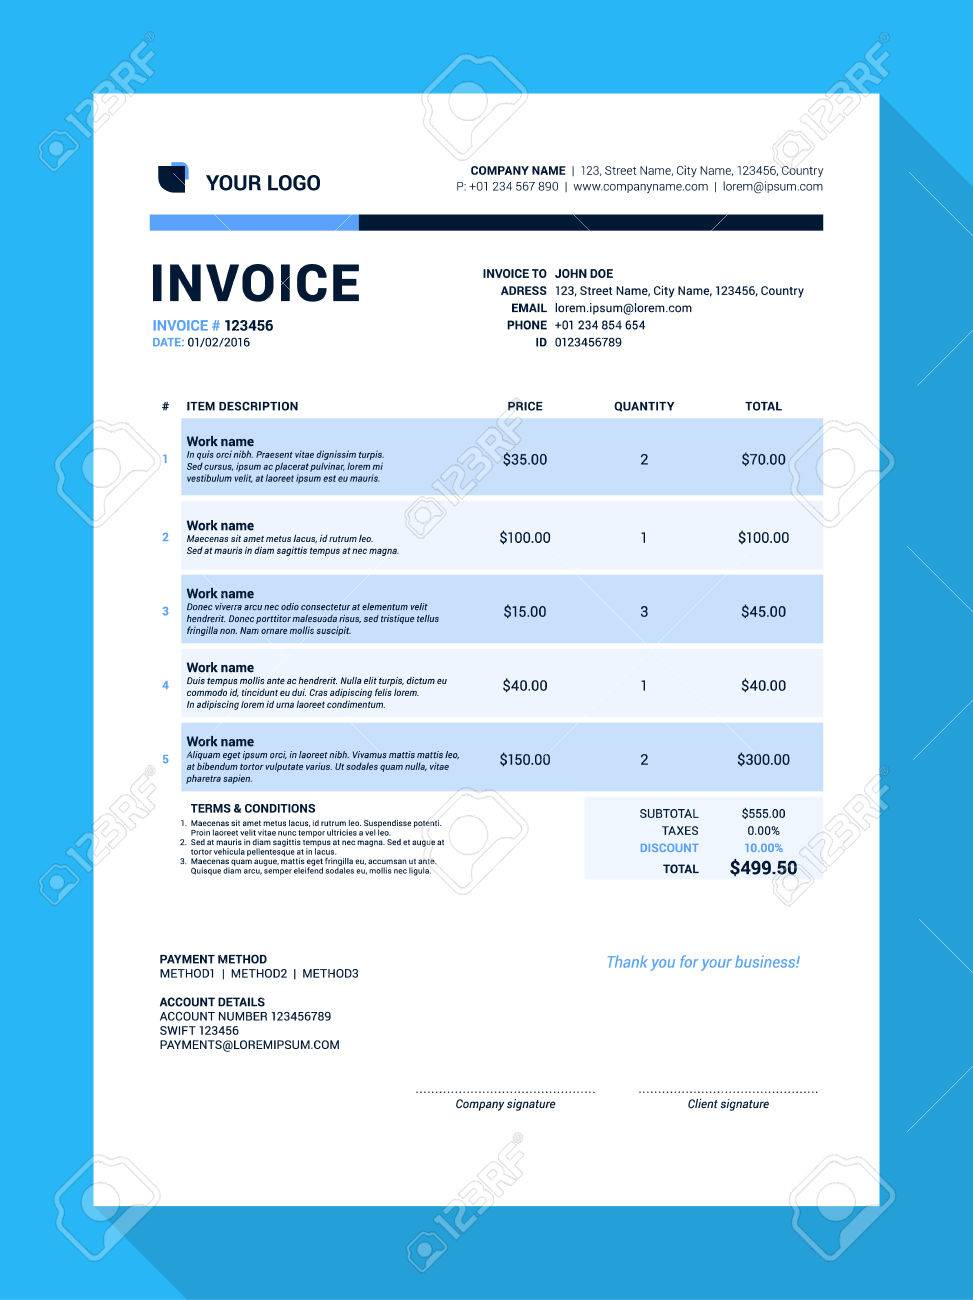 Customizable Invoice Form Template Design Illustration Royalty Free - Customizable invoice